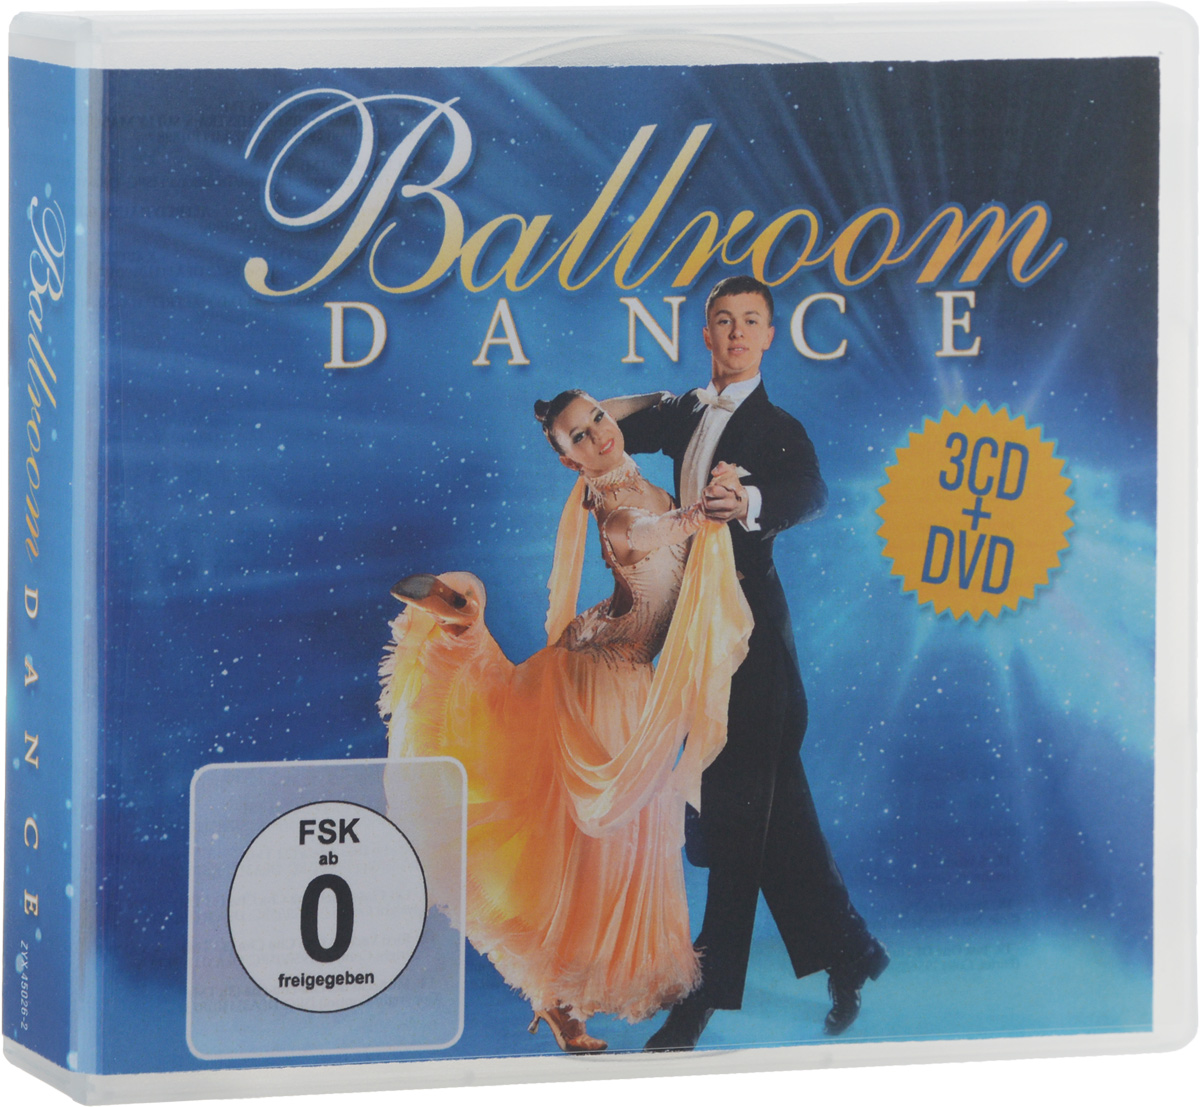 Ballroom Dance (3 CD + DVD)